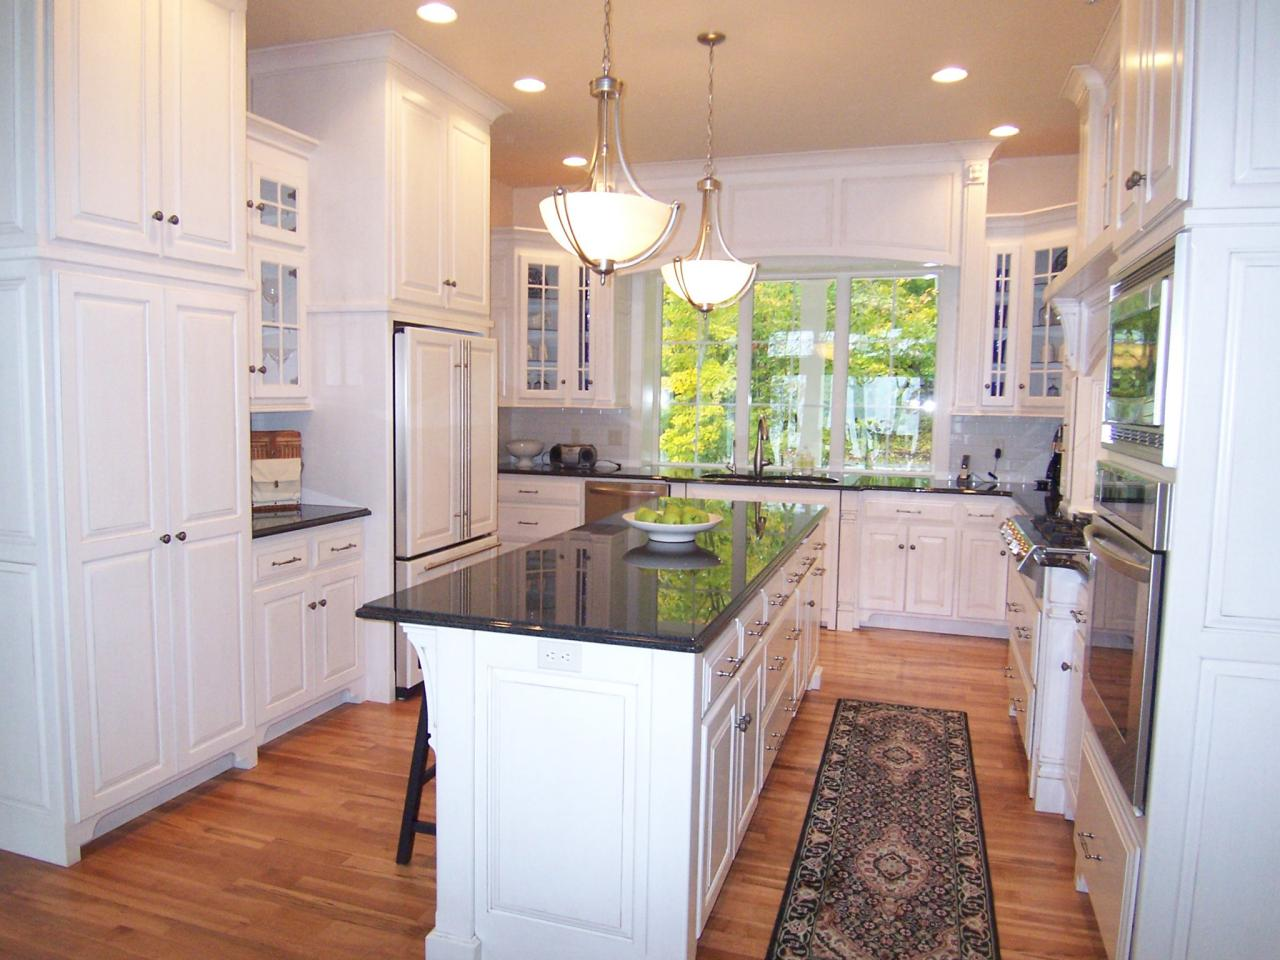 u shaped kitchen designs without island u shaped kitchen designs u shaped kitchen designs without island photo 5